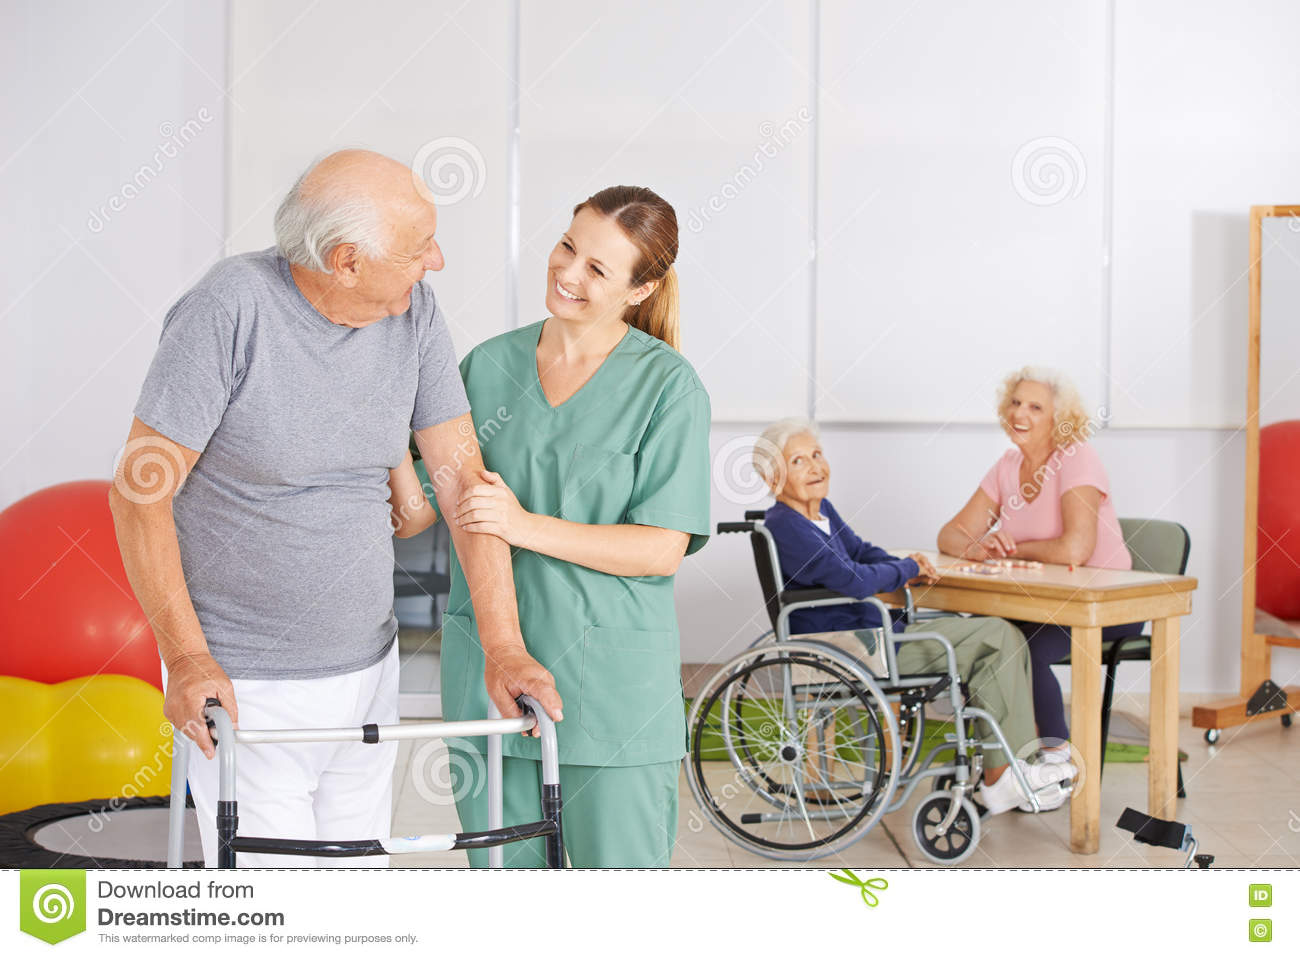 Old Man With Geratric Nurse In Nursing Home Stock Photo Image Of Everyday Rehab 73308038